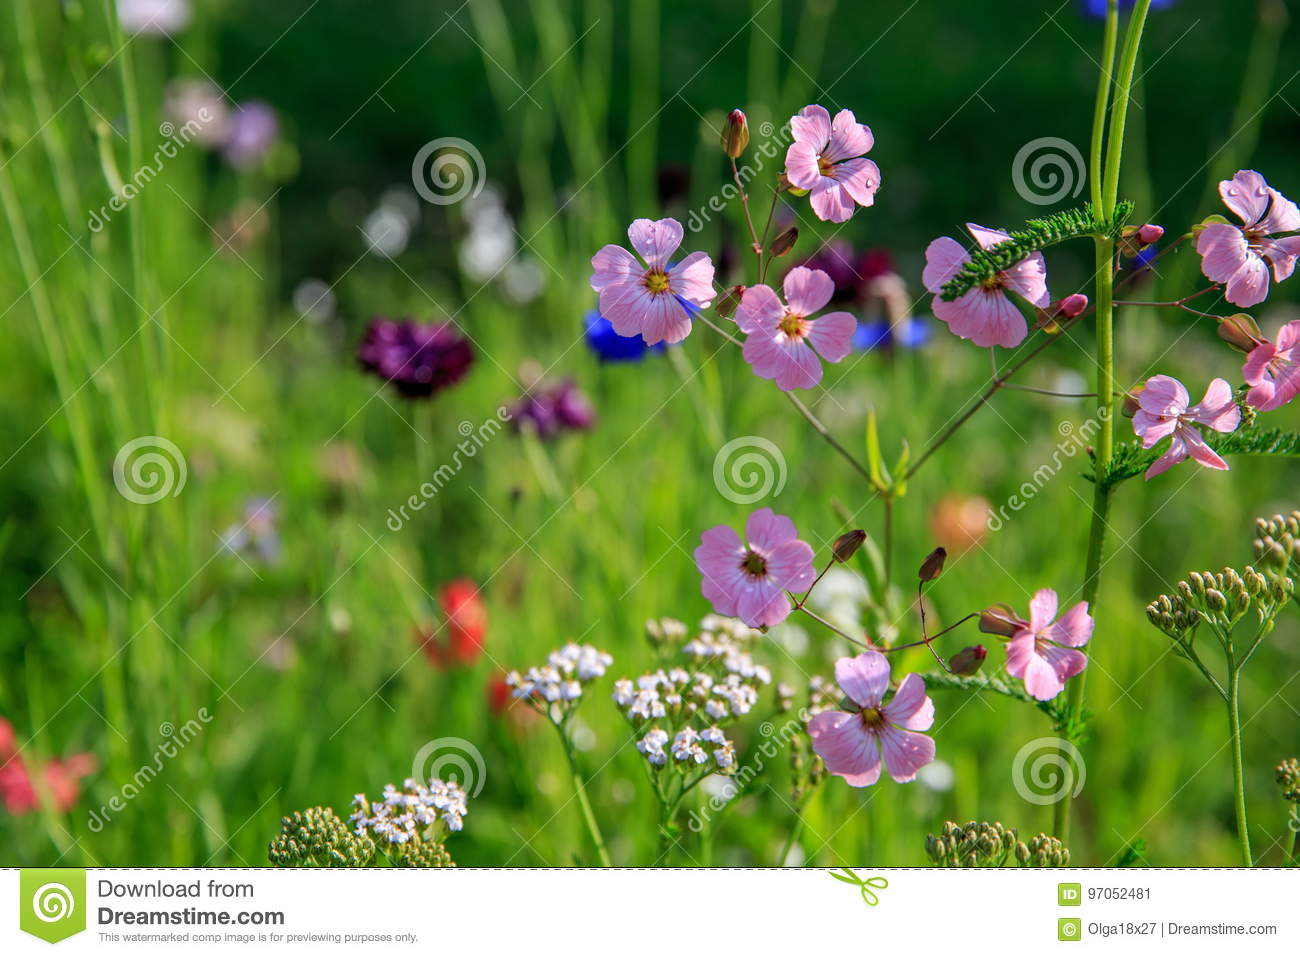 Beautiful meadow field with wild flowers. Spring Wildflowers closeup. Health care concept. Rural field. Alternative